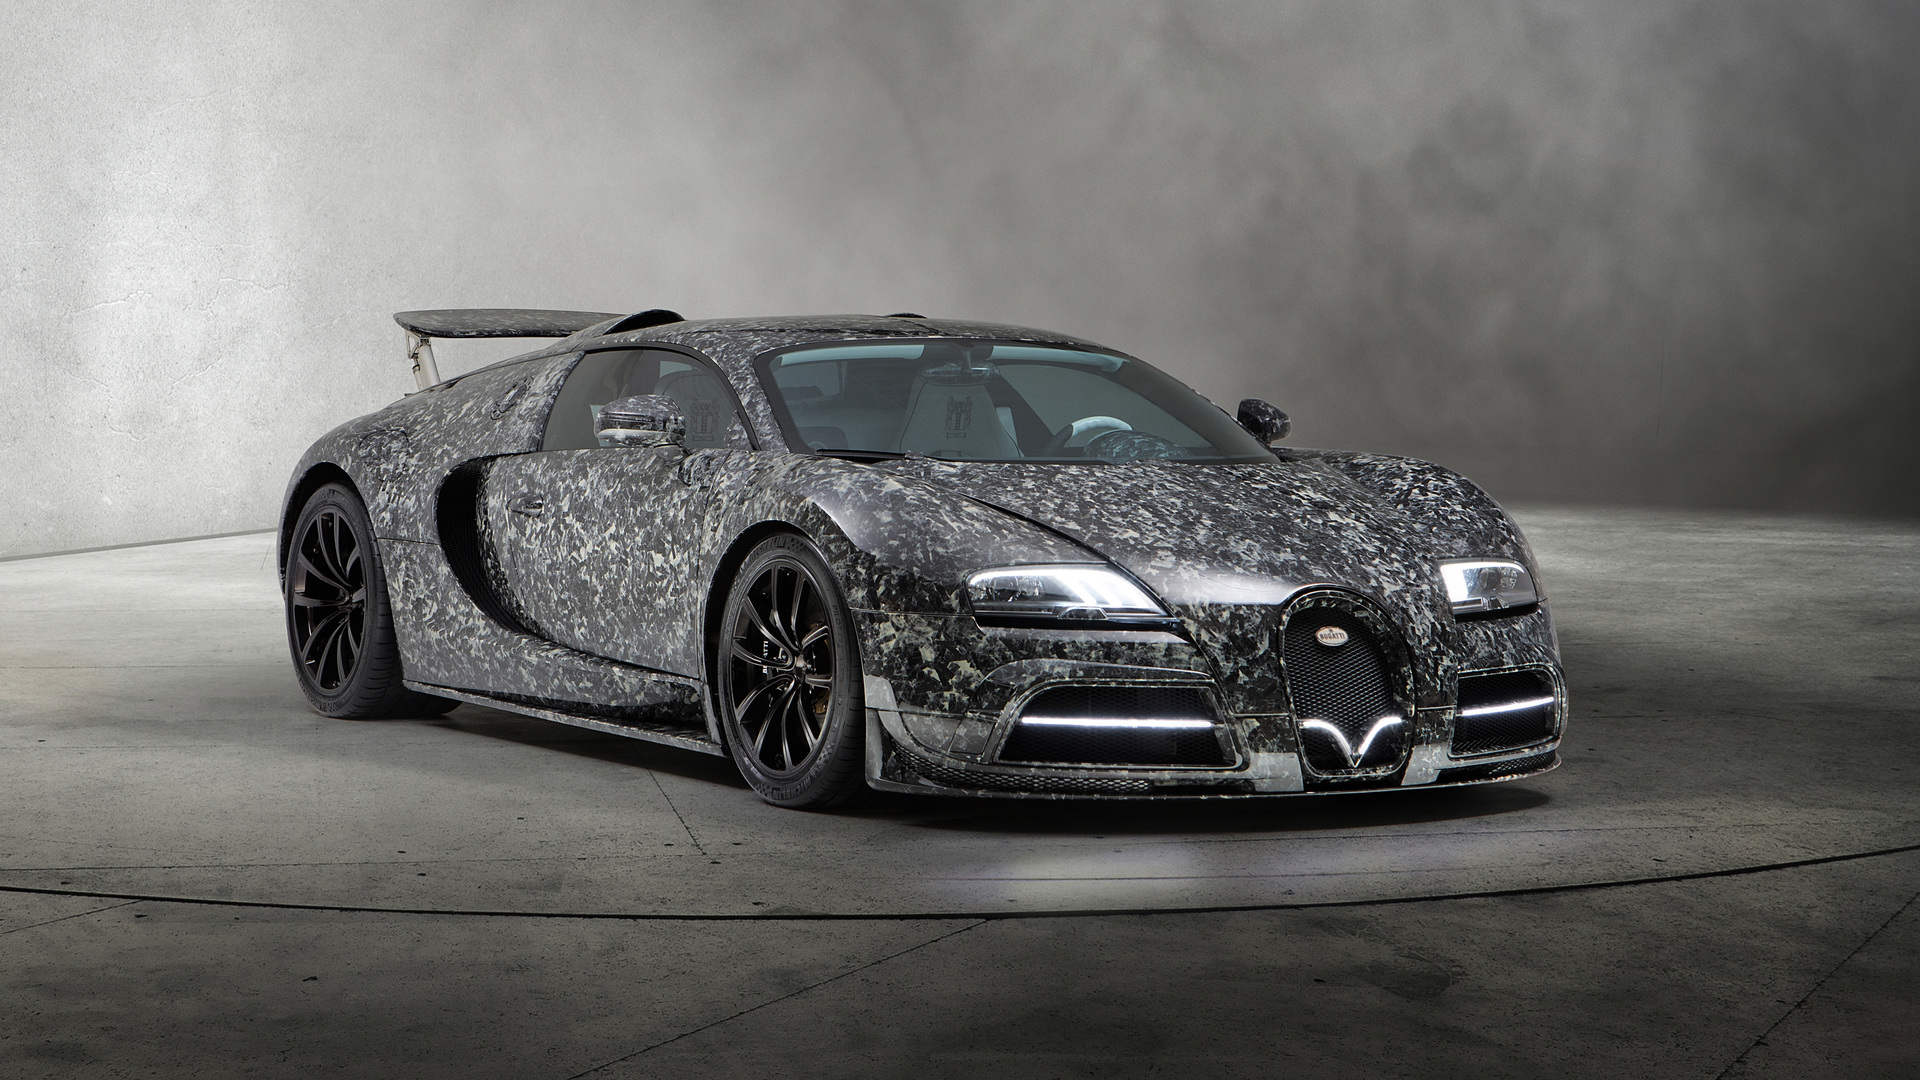 1920x1080 Mansory Bugatti Veyron Vivere Diamond Edition 2018 Laptop